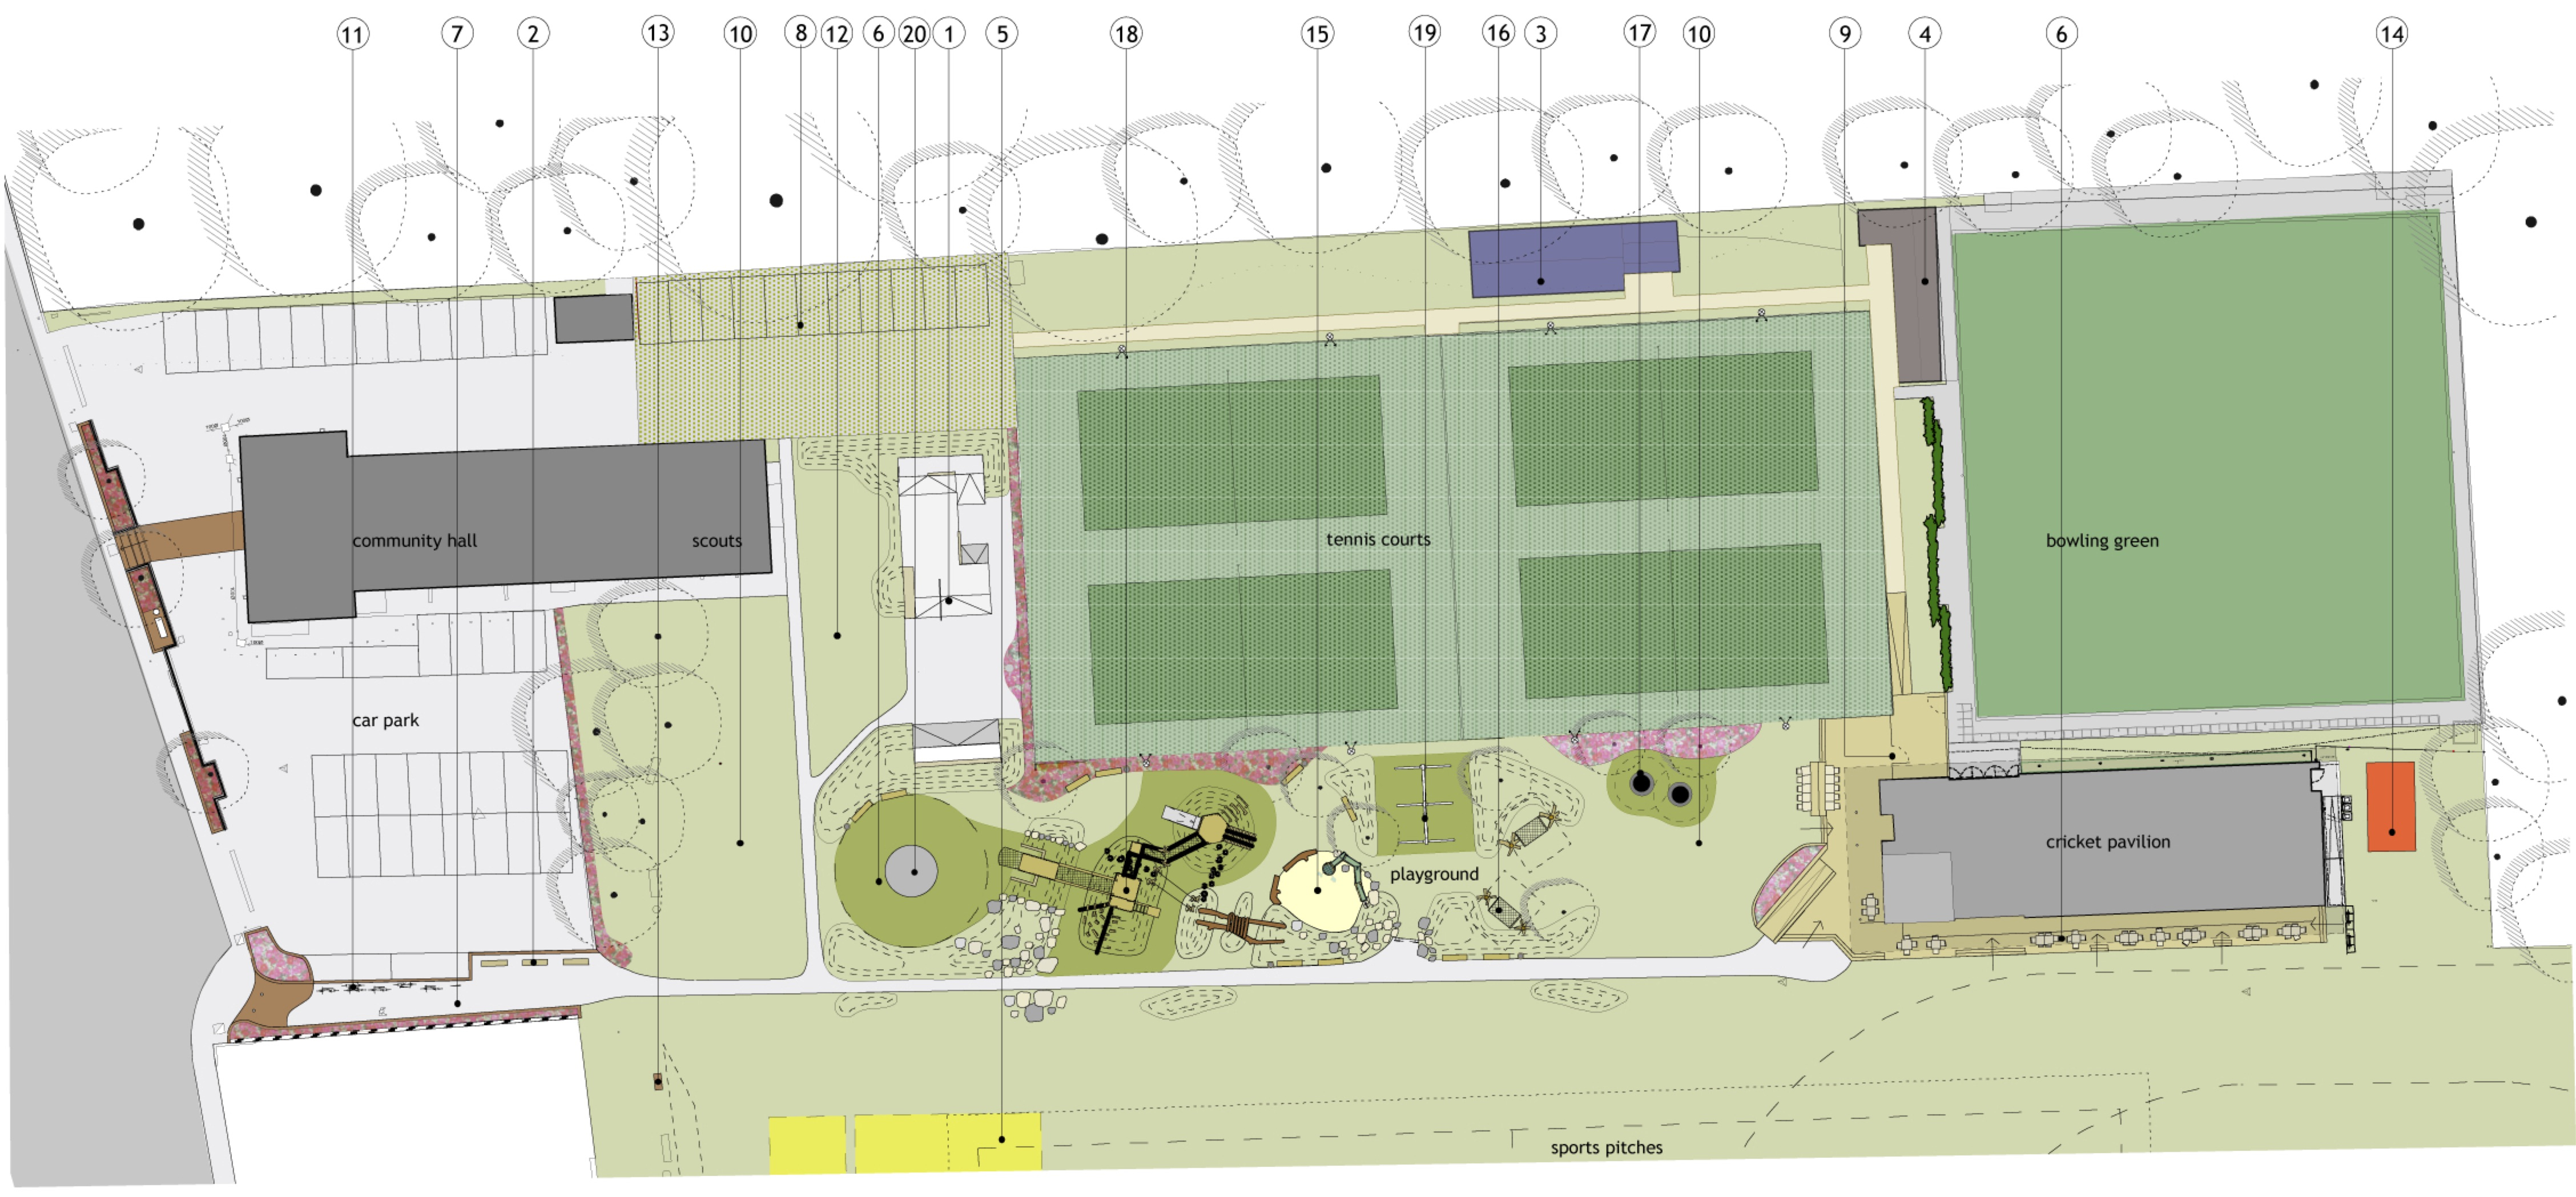 Revised master plan of top area of the rec